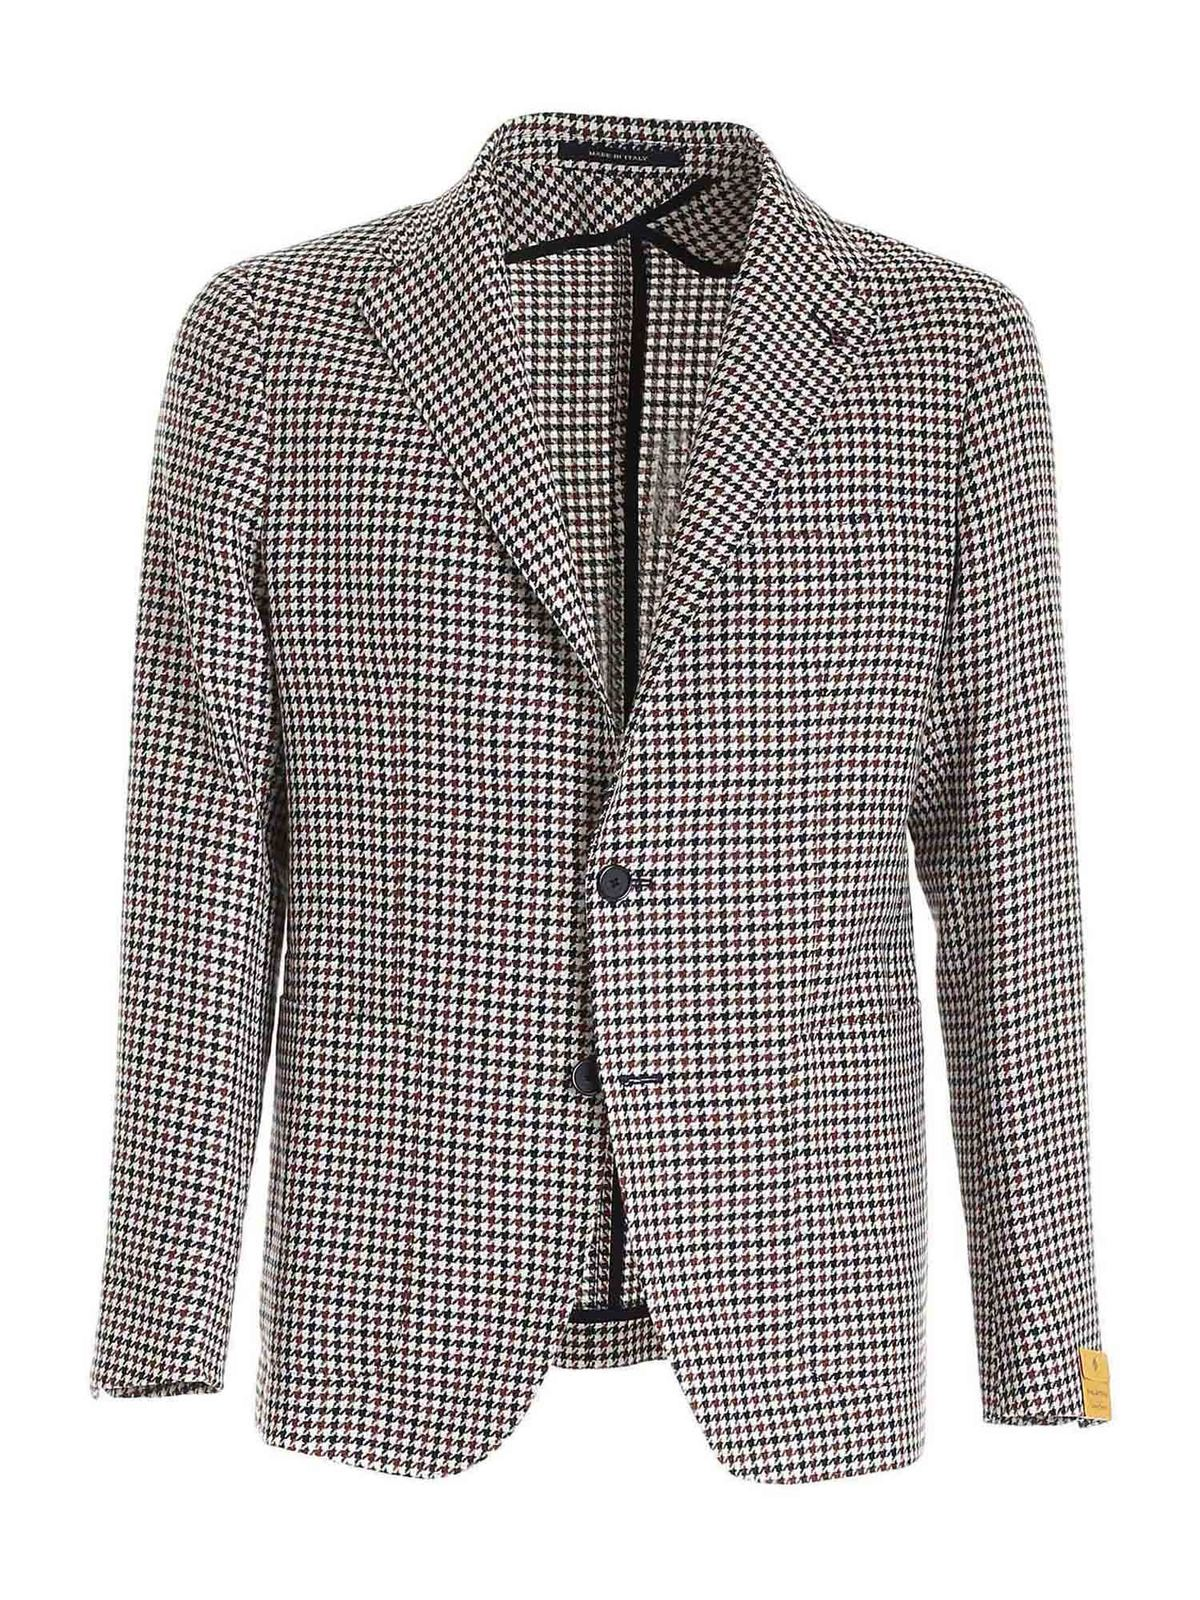 Tagliatore HOUNDSTOOTH JACKET IN WHITE AND BROWN